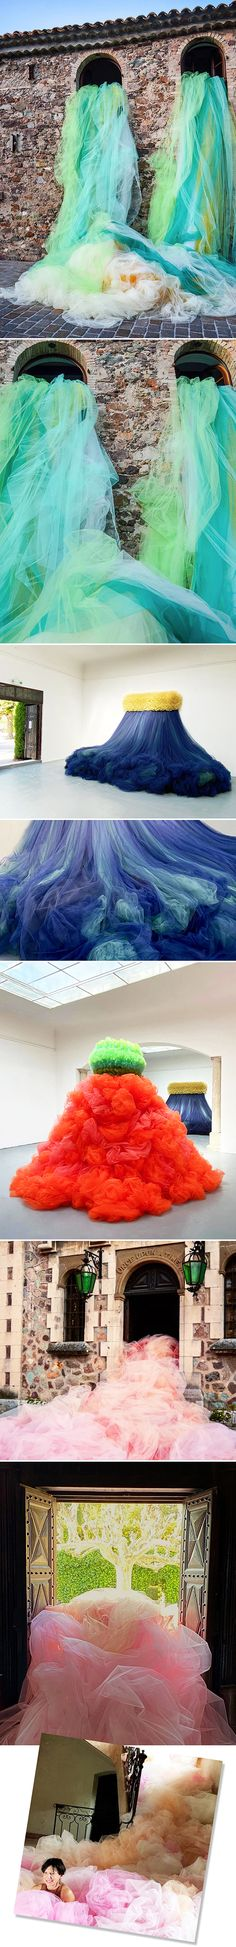 The Jealous Curator /// curated contemporary art /// ana maria hernando French Castles, Art Society, Japanese Artists, American Artists, Installation Art, Beautiful Images, Color Splash, Contemporary Art, Vibrant Colors